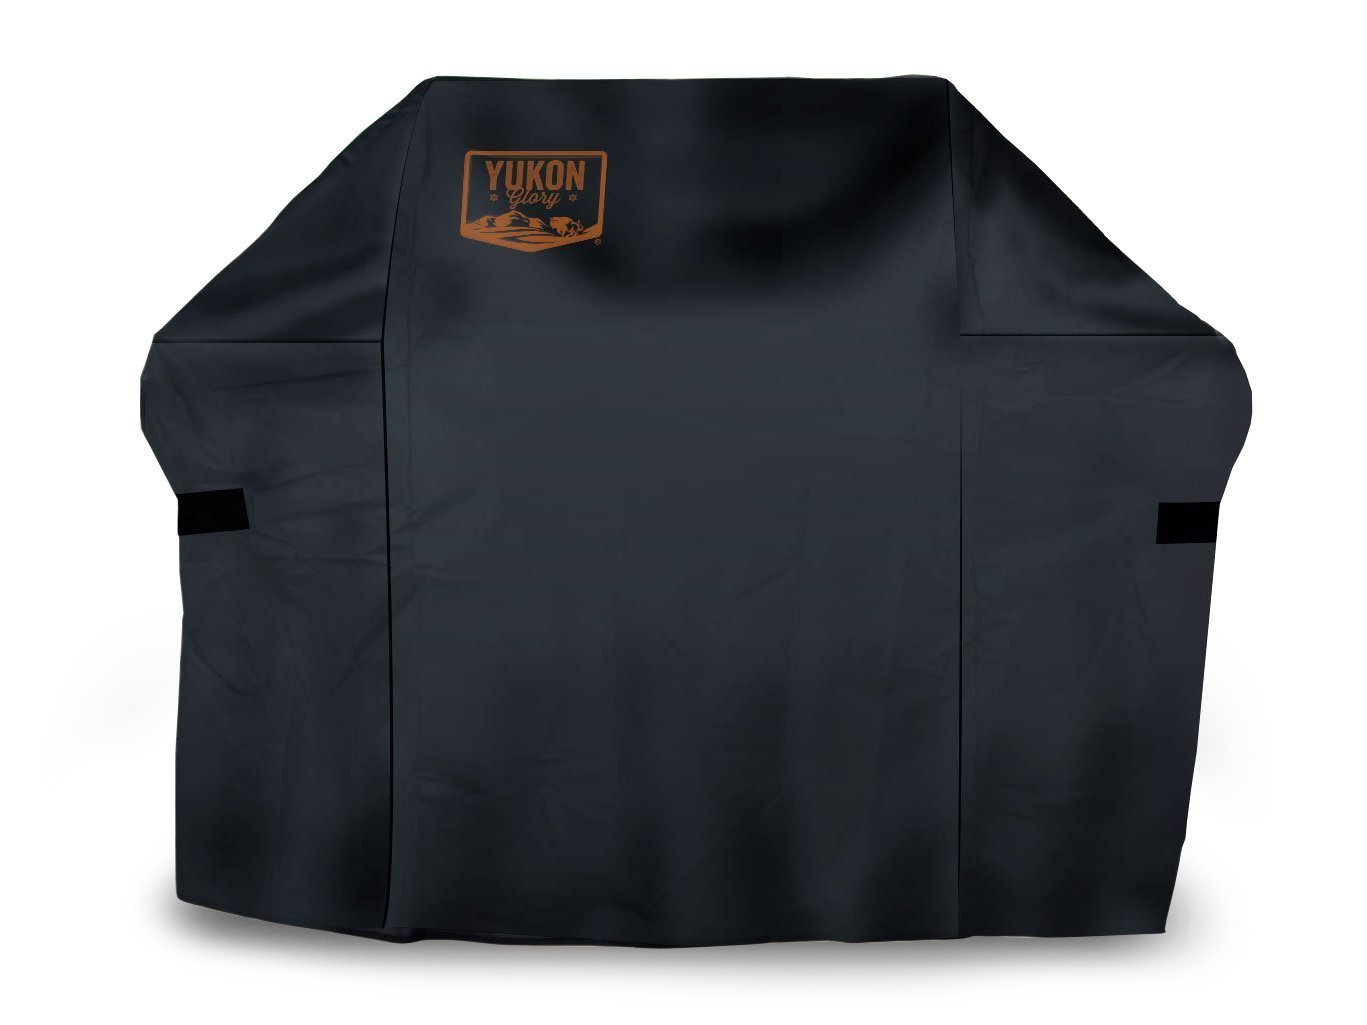 Yukon Glory  7553 Premium Grill Cover For Weber Genesis E And S Series Gas Grills - Available In 3 Colors